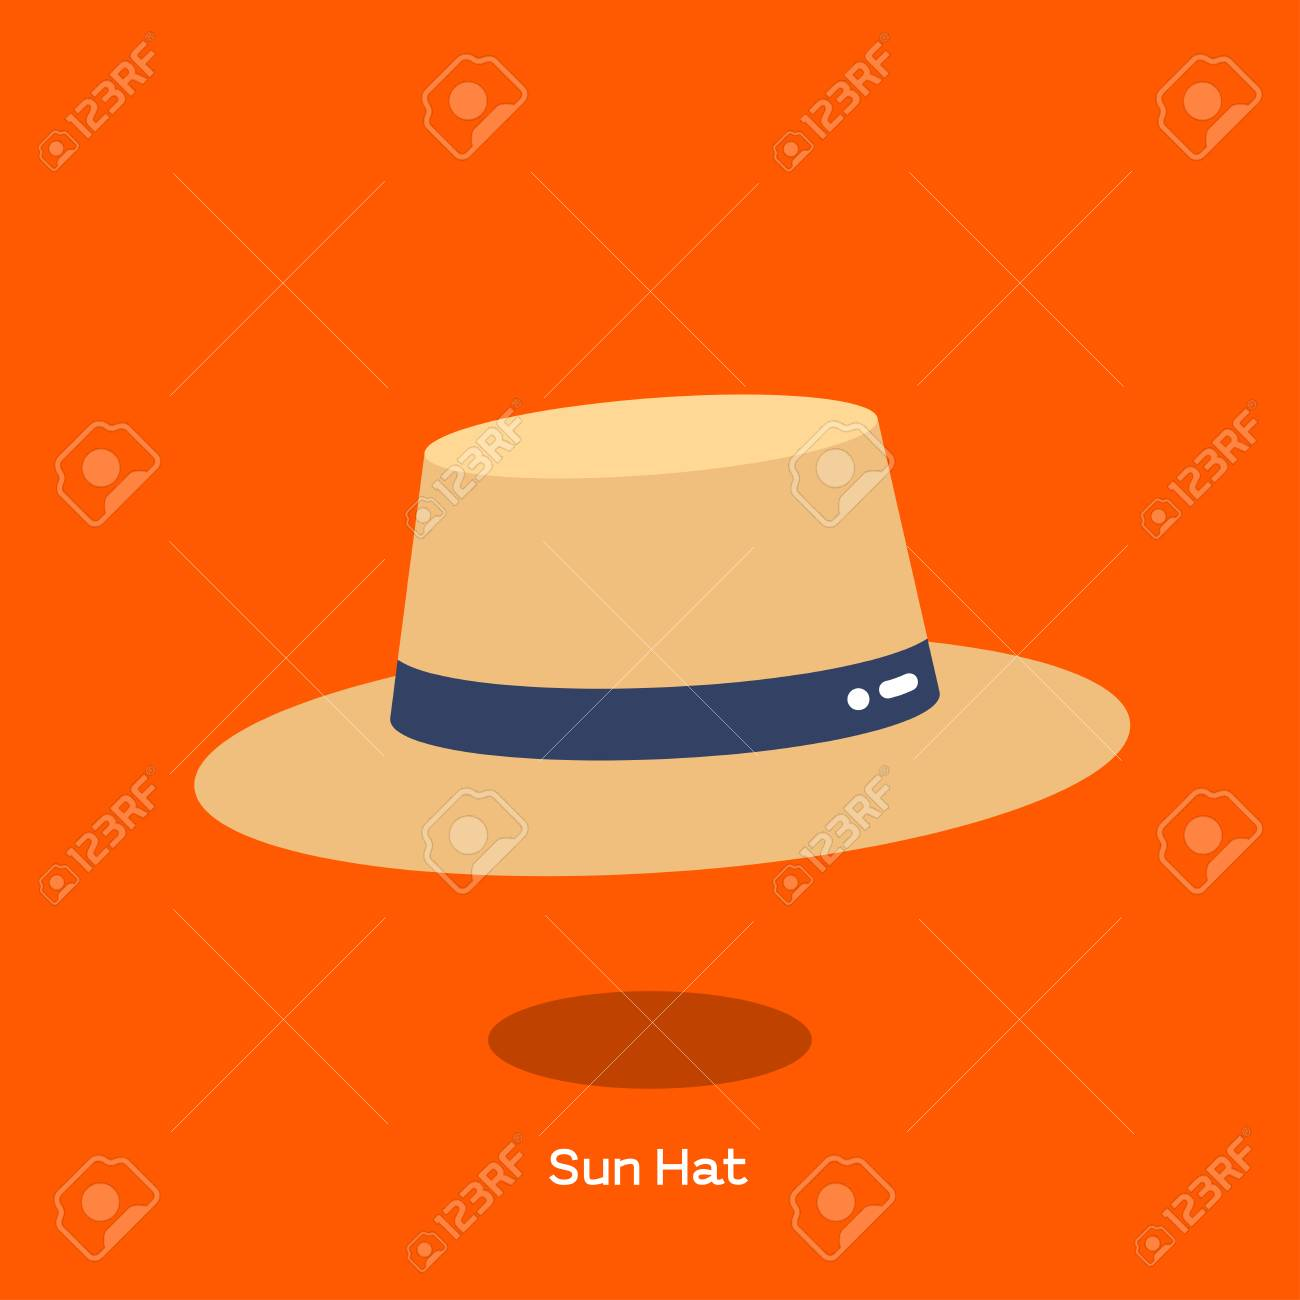 063d6182a794d0 Straw sun hat with wide brim. Light weight straw hat is design to shade the